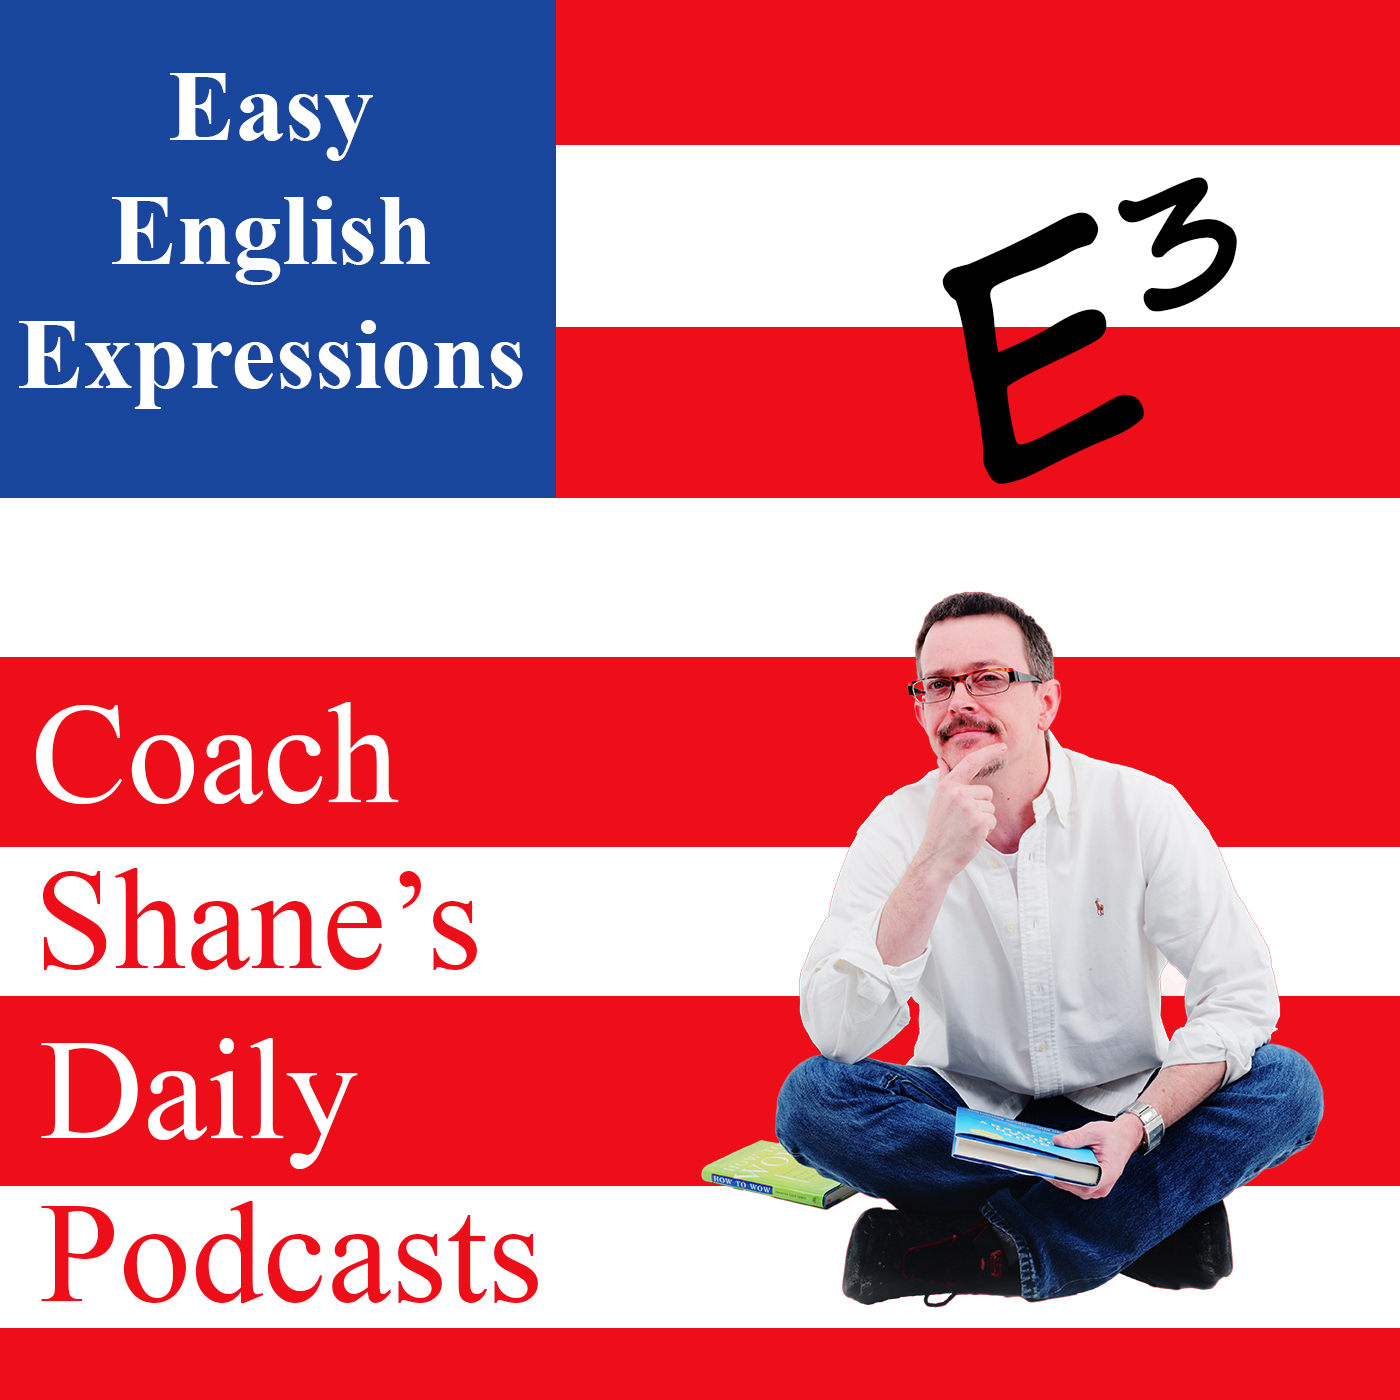 68 Daily Easy English Expression PODCAST—Hat's off to YOU!!